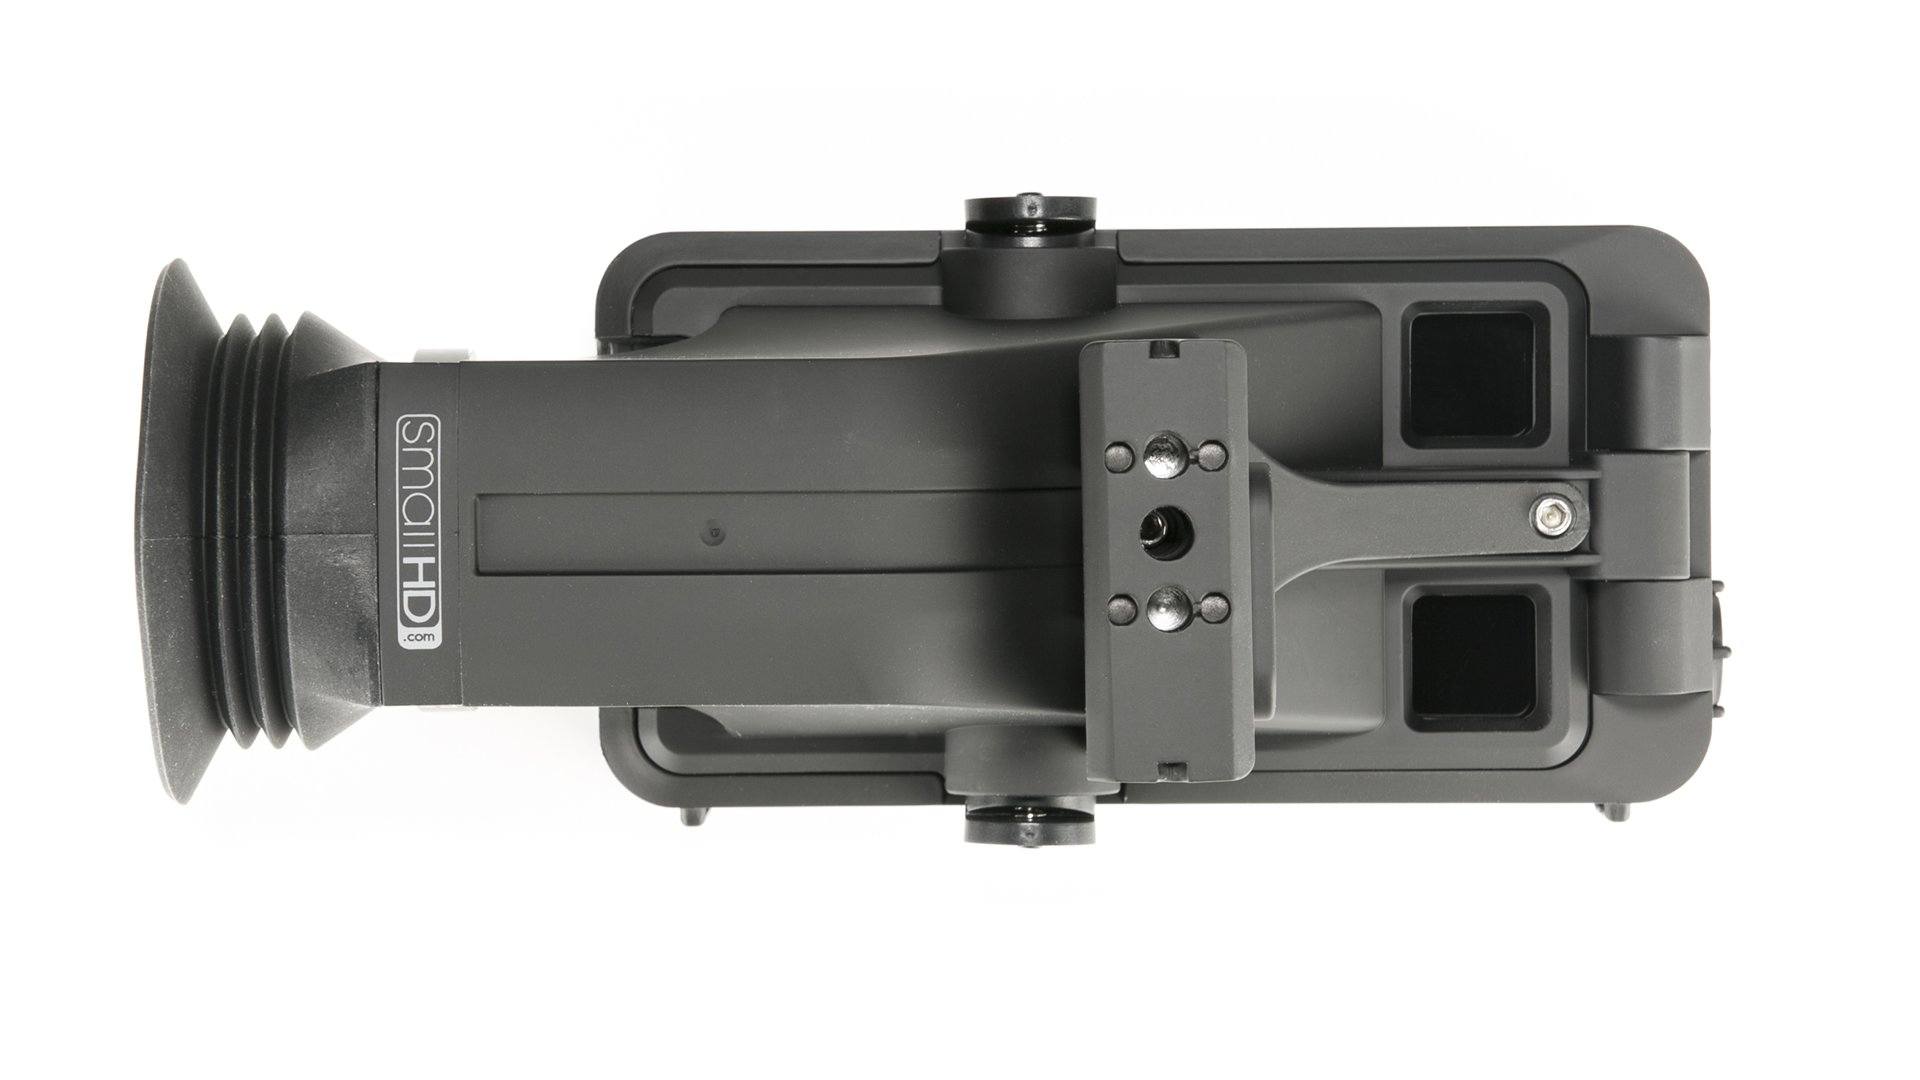 Sidefinder 501 ¥ Monitor/EVF Combo